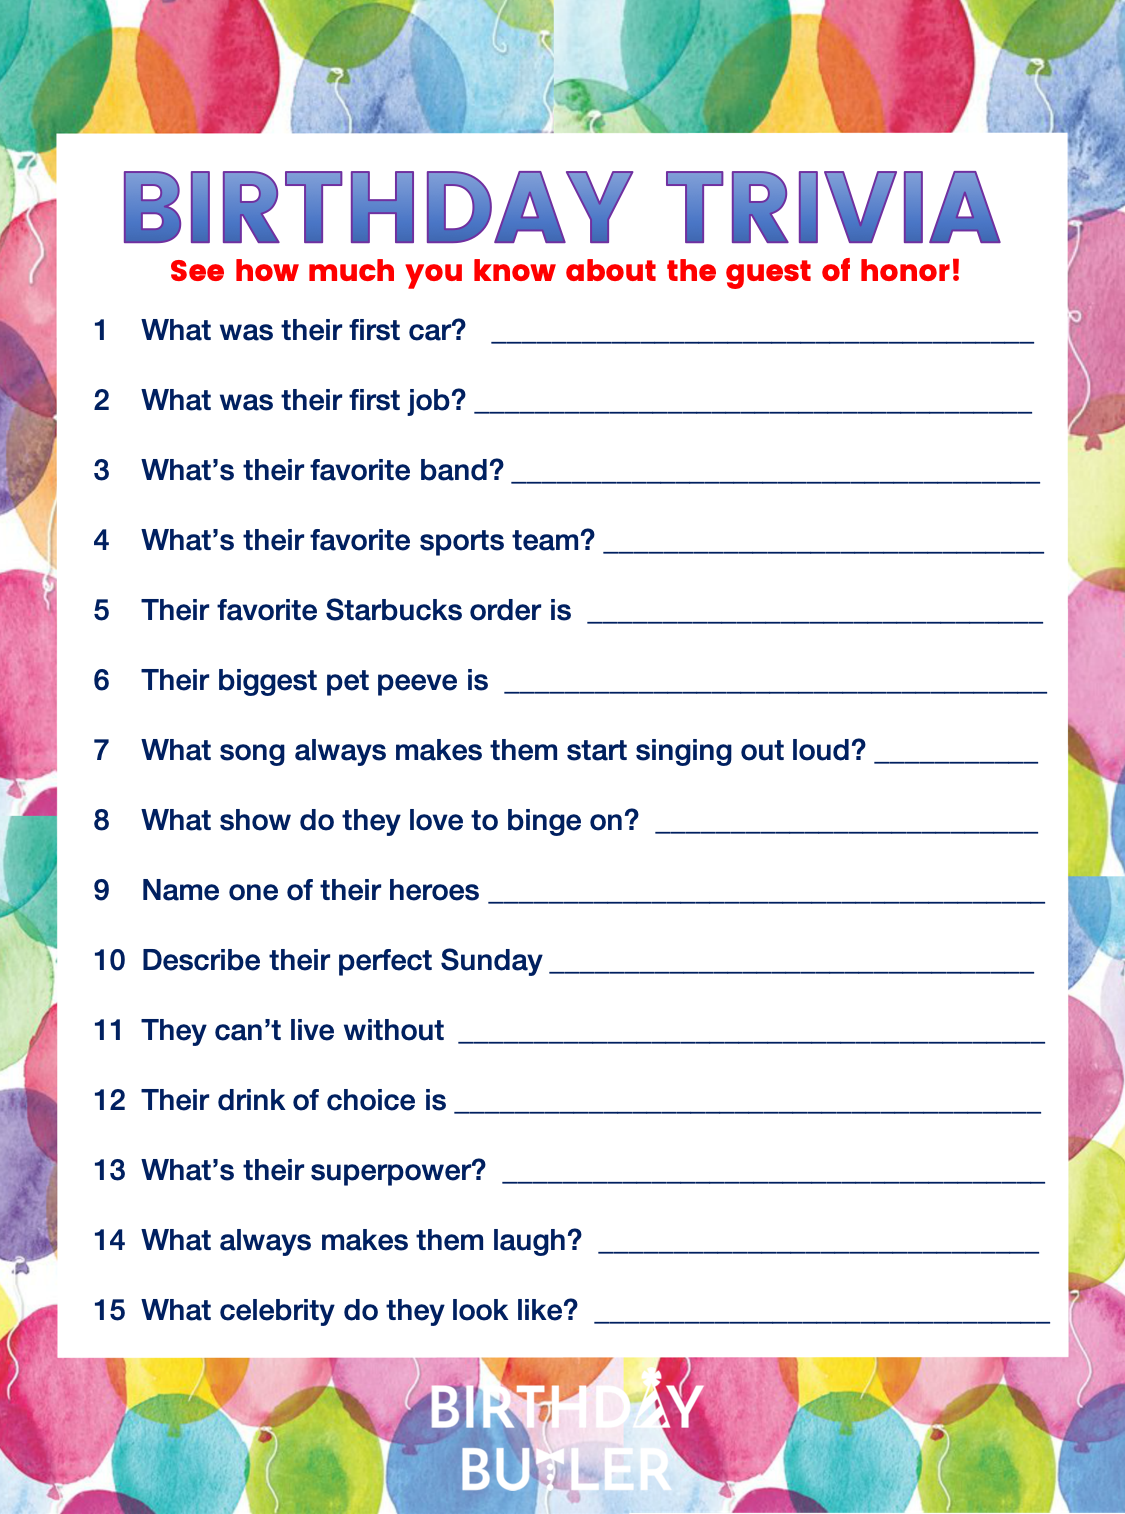 Add Oomph To Your Party With Birthday Trivia In